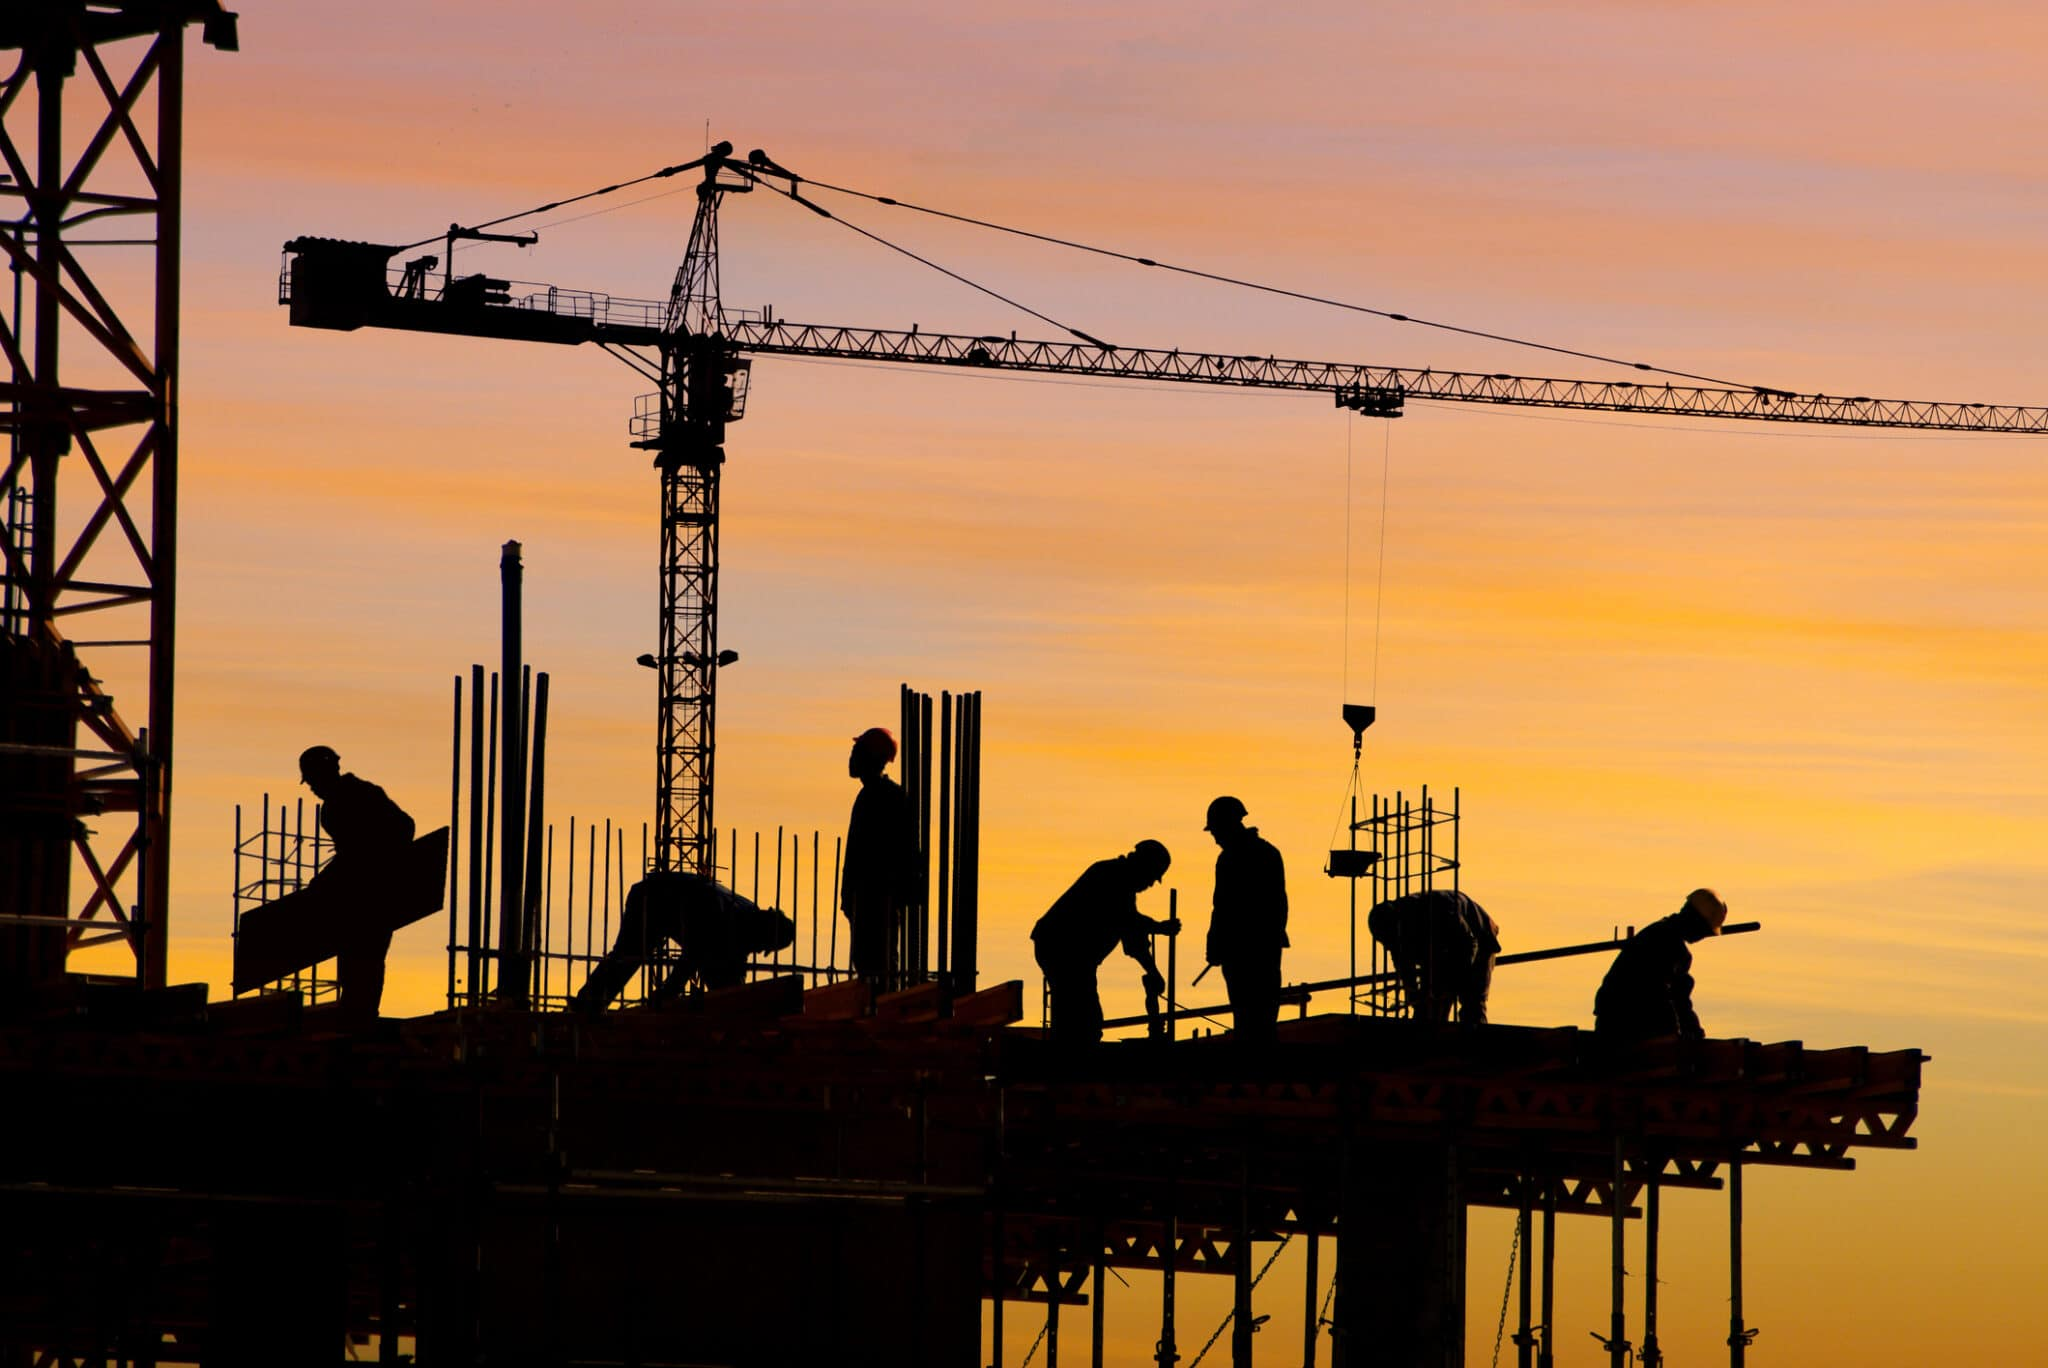 The Five Most Common Types of New York Construction Accidents